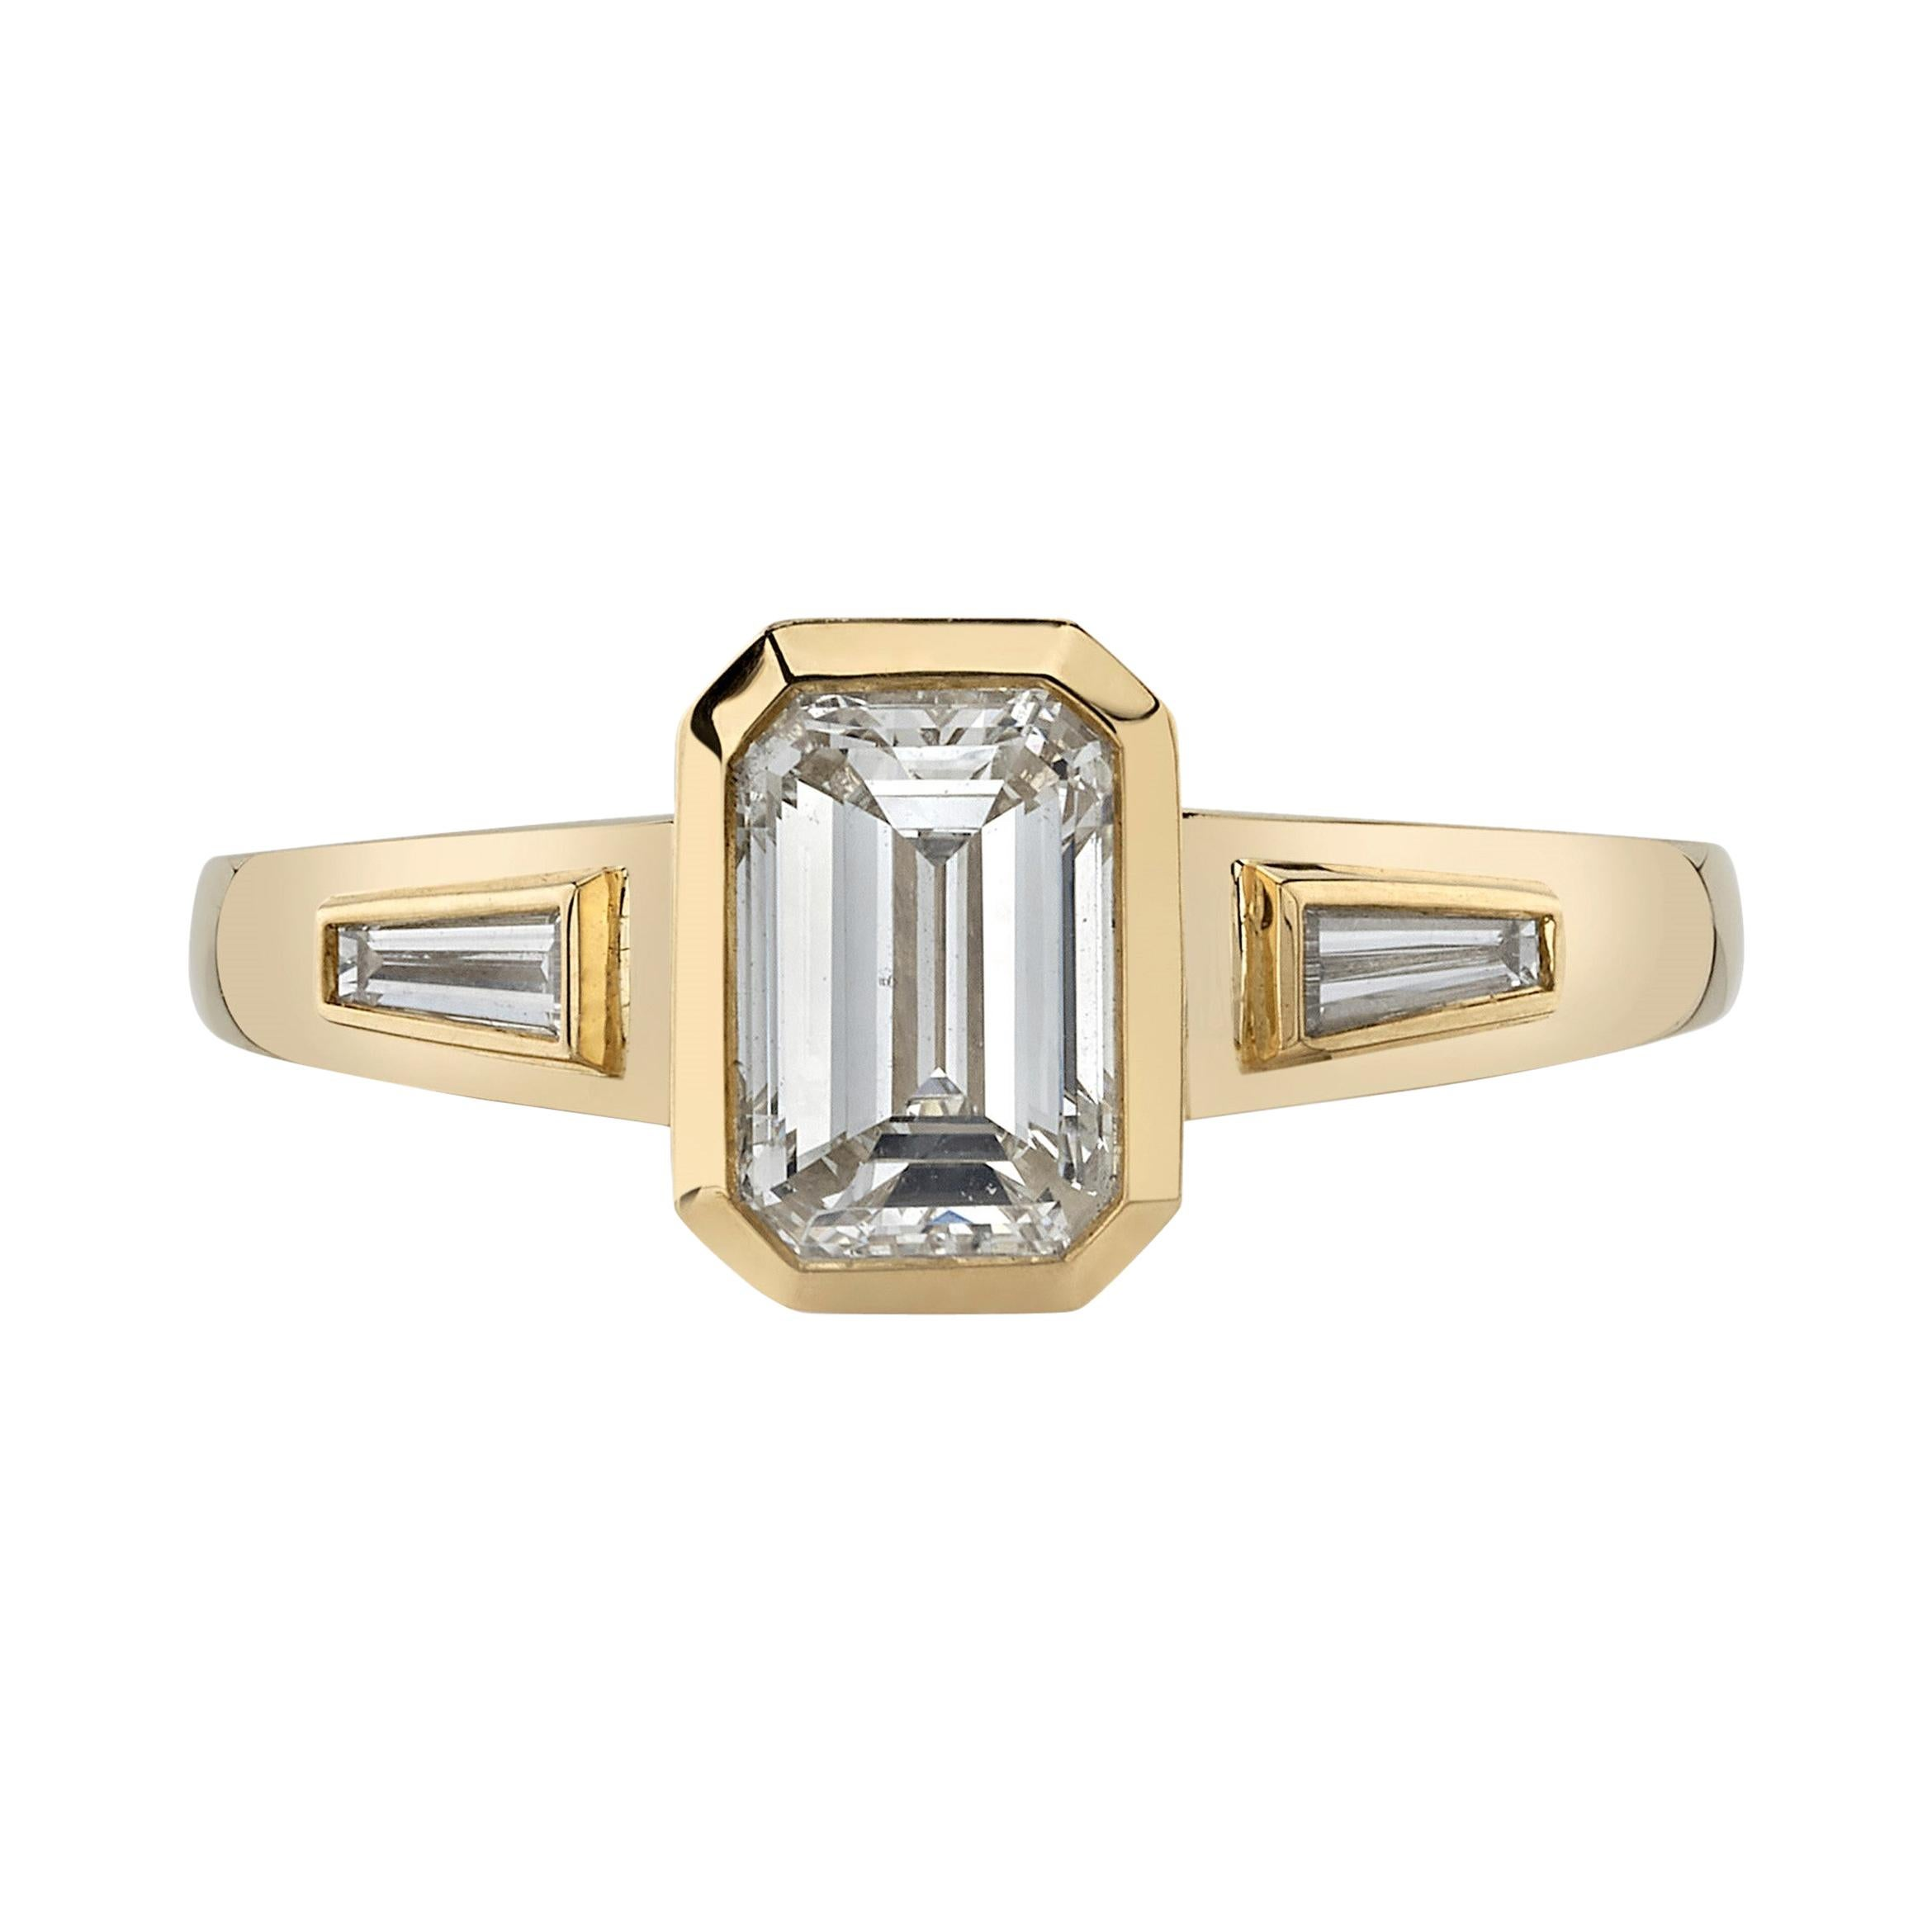 1.05 Carat Emerald Cut Diamond Set in a Handcrafted Yellow Gold Engagement Ring